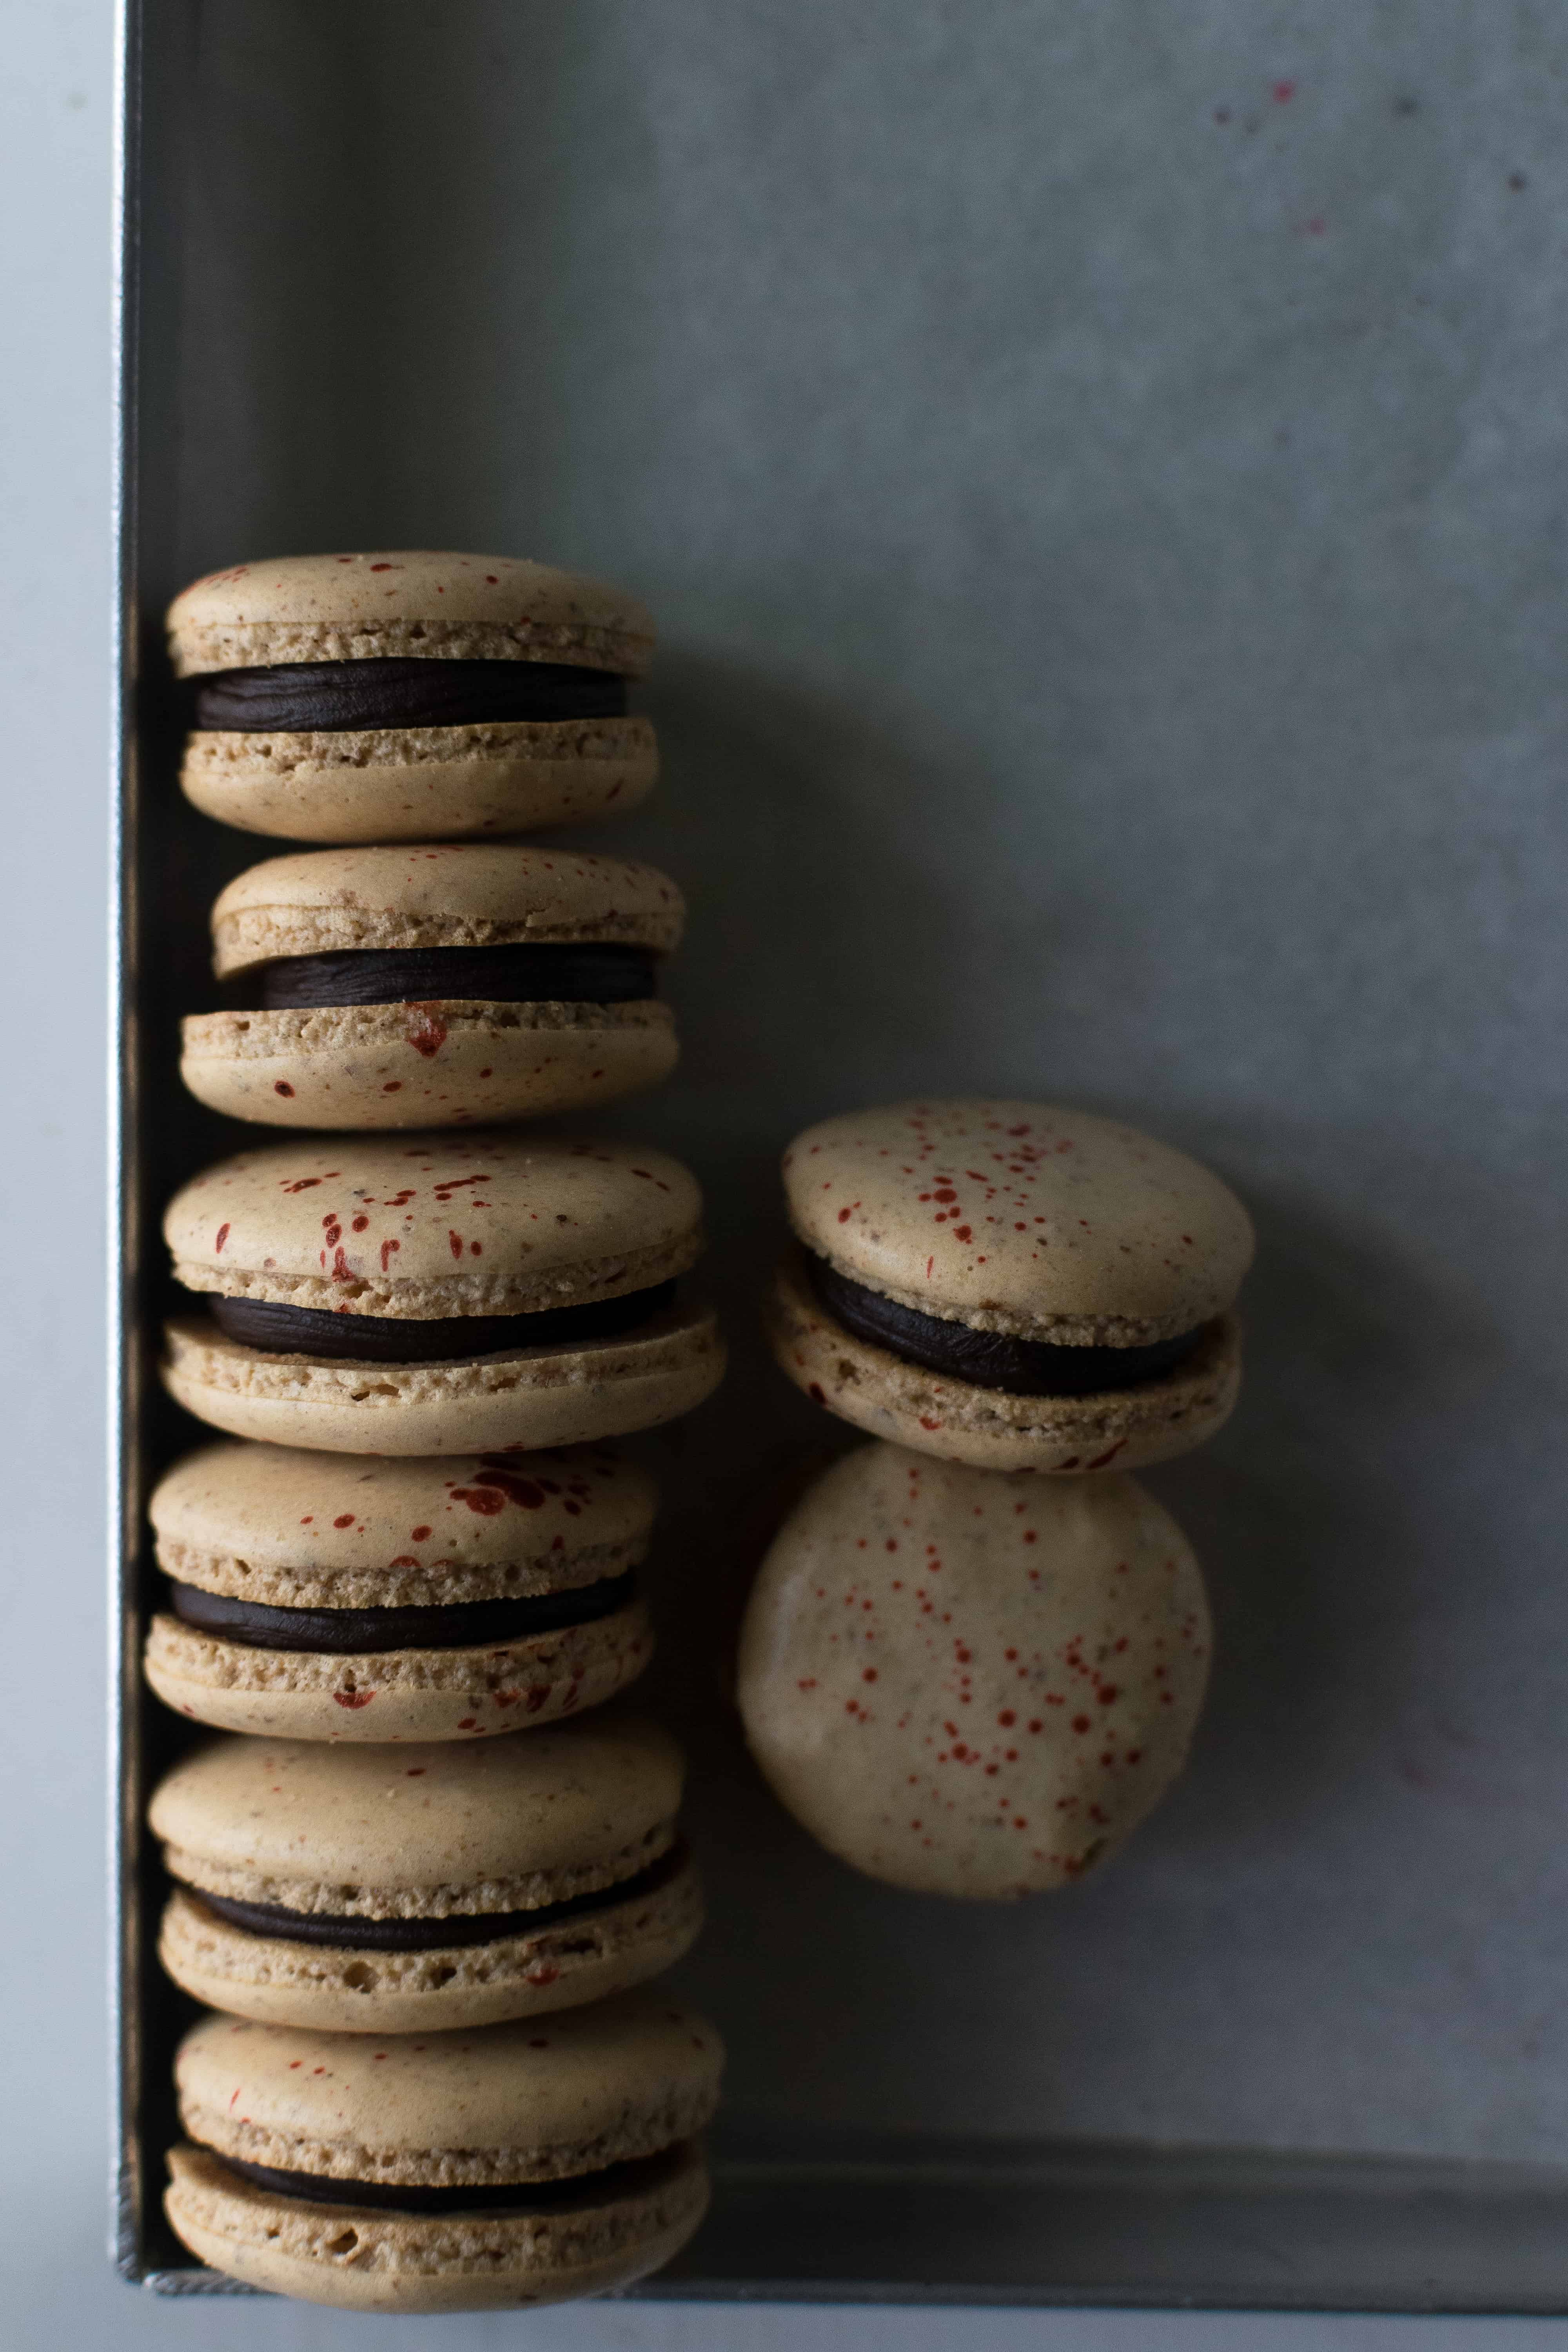 Beginner's guide to French macarons